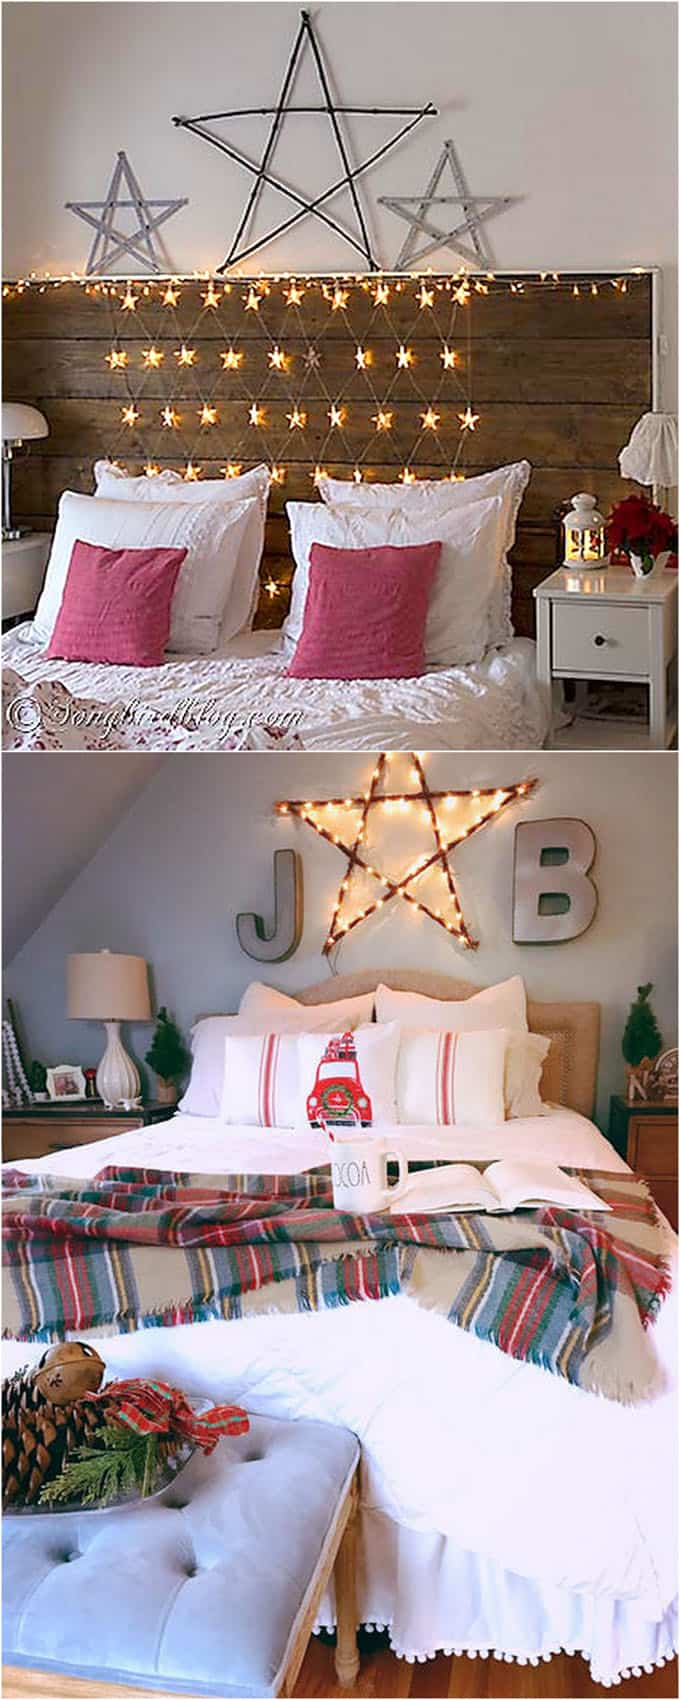 100 favorite christmas decorating ideas every room apieceofrainbow 10 - 100+ Favorite Christmas Decorating Ideas For Every Room in Your Home : Part 2